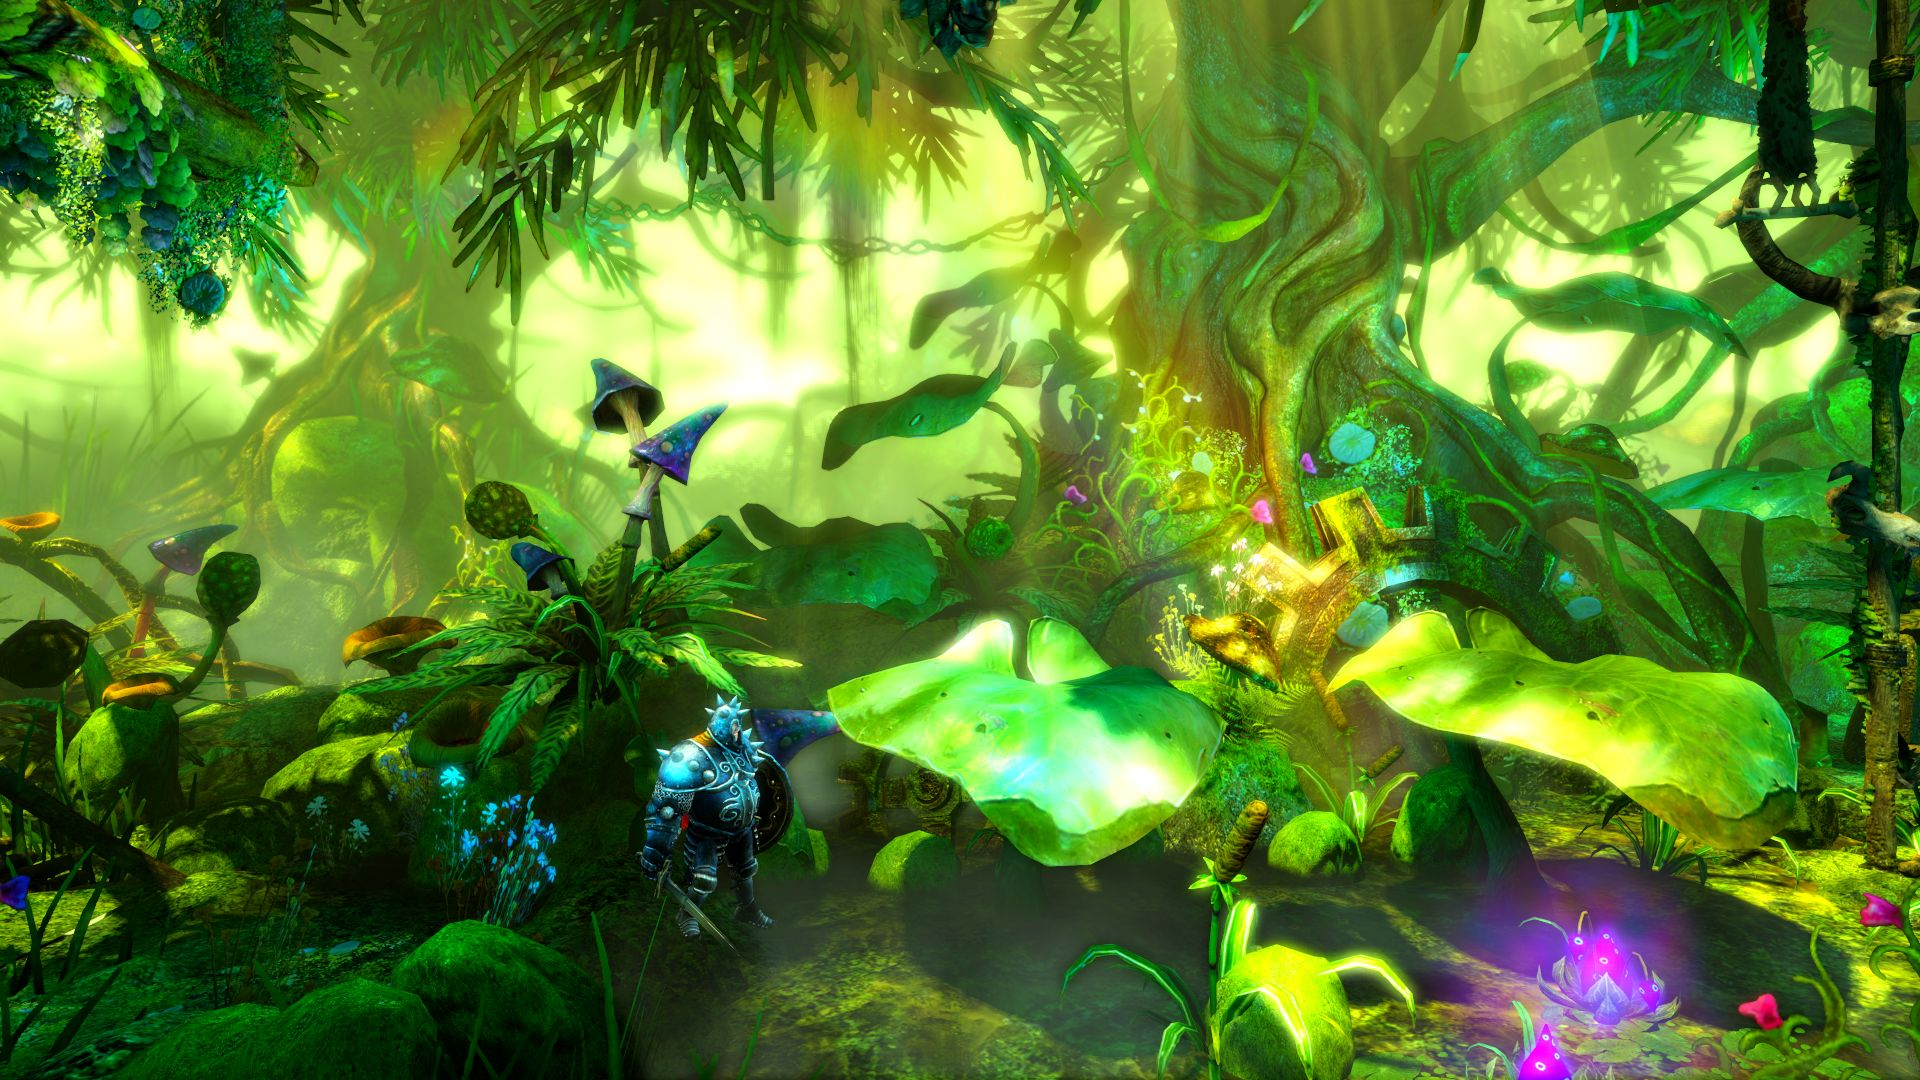 Trine 2: The Complete Story for the PS4